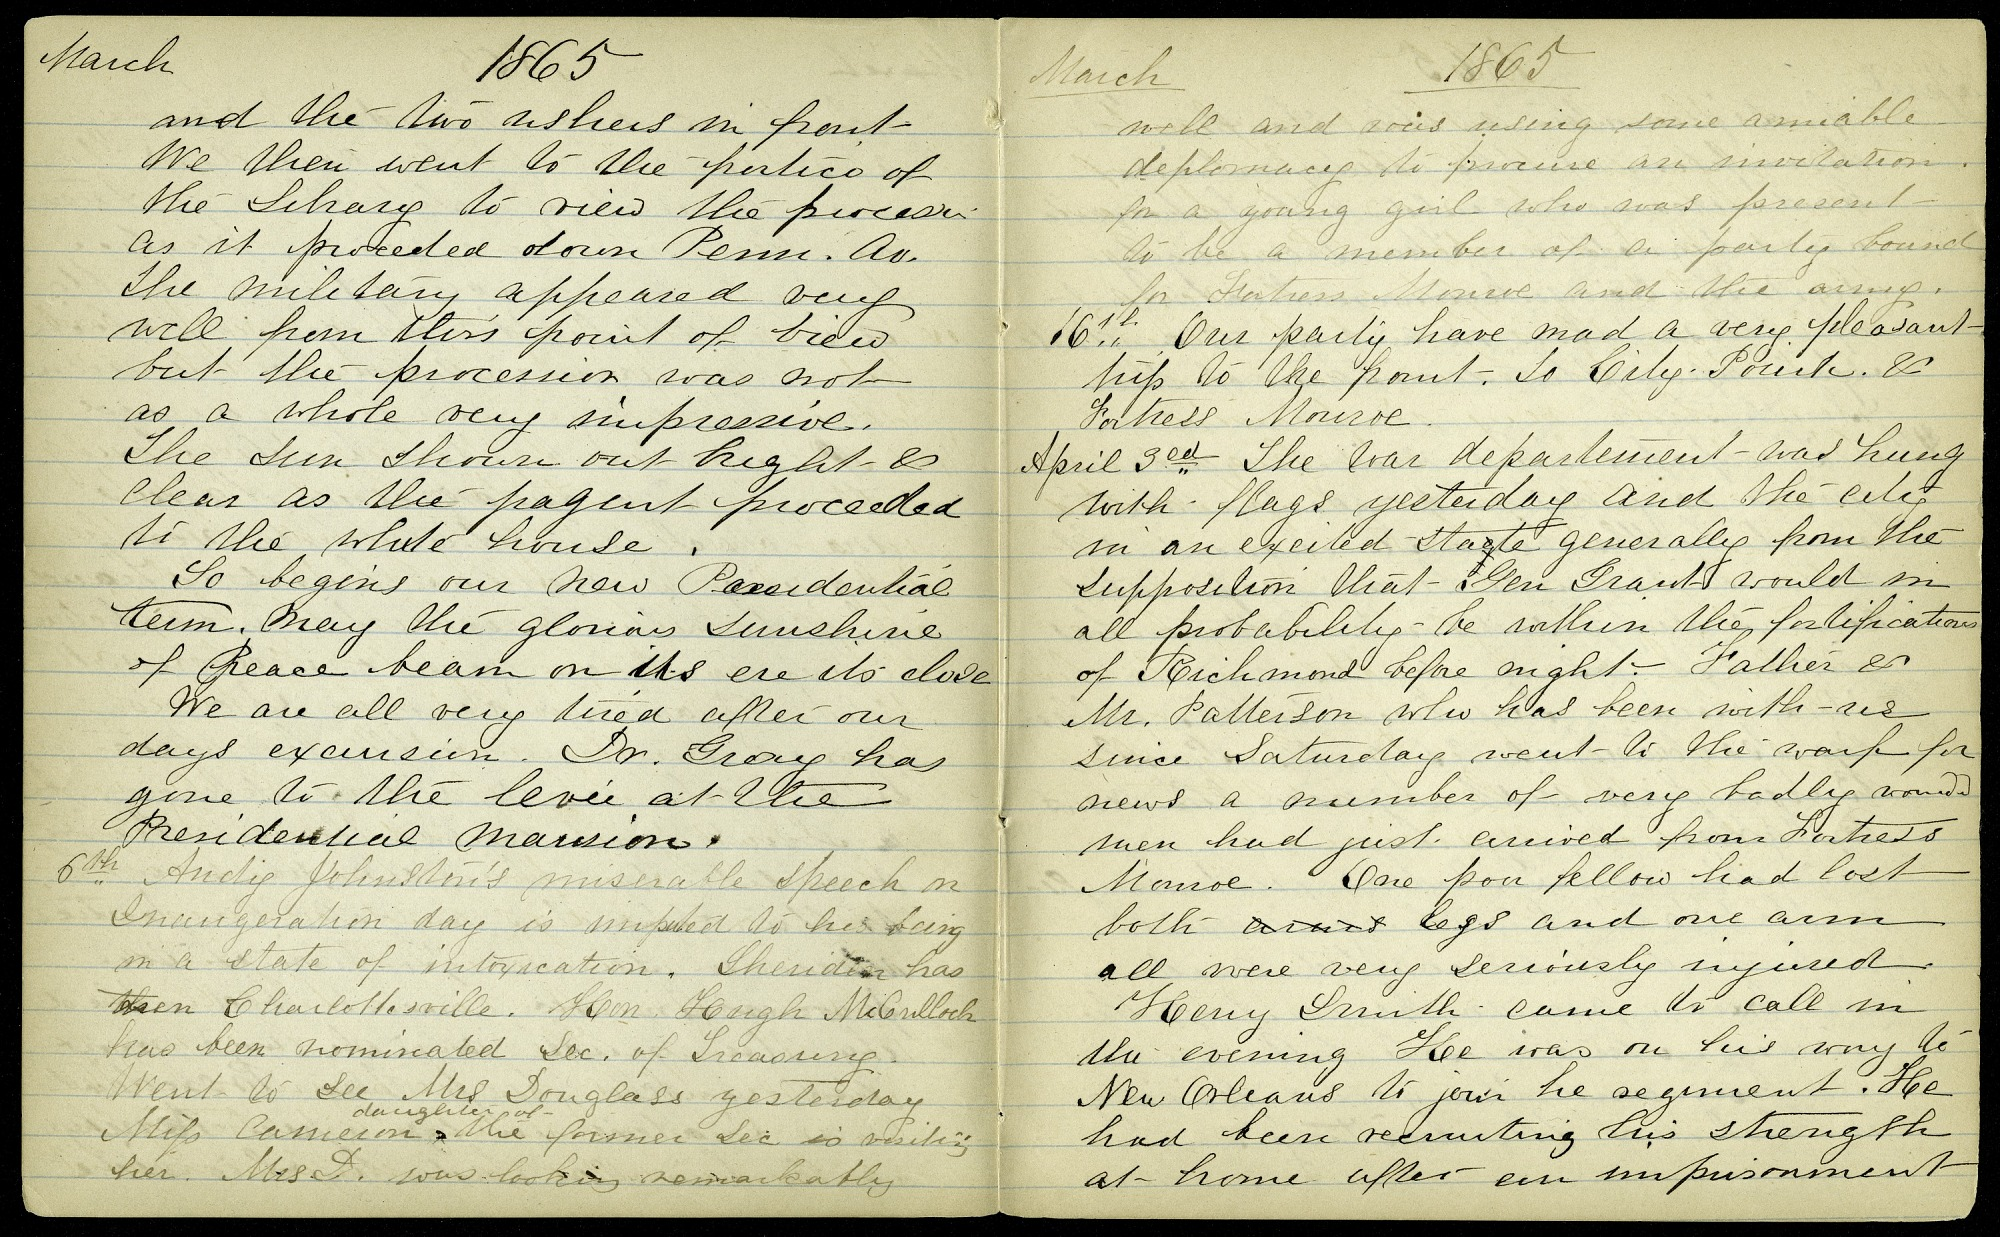 Mary Henry Diary Entries on Civil War Hospitals, July 1862